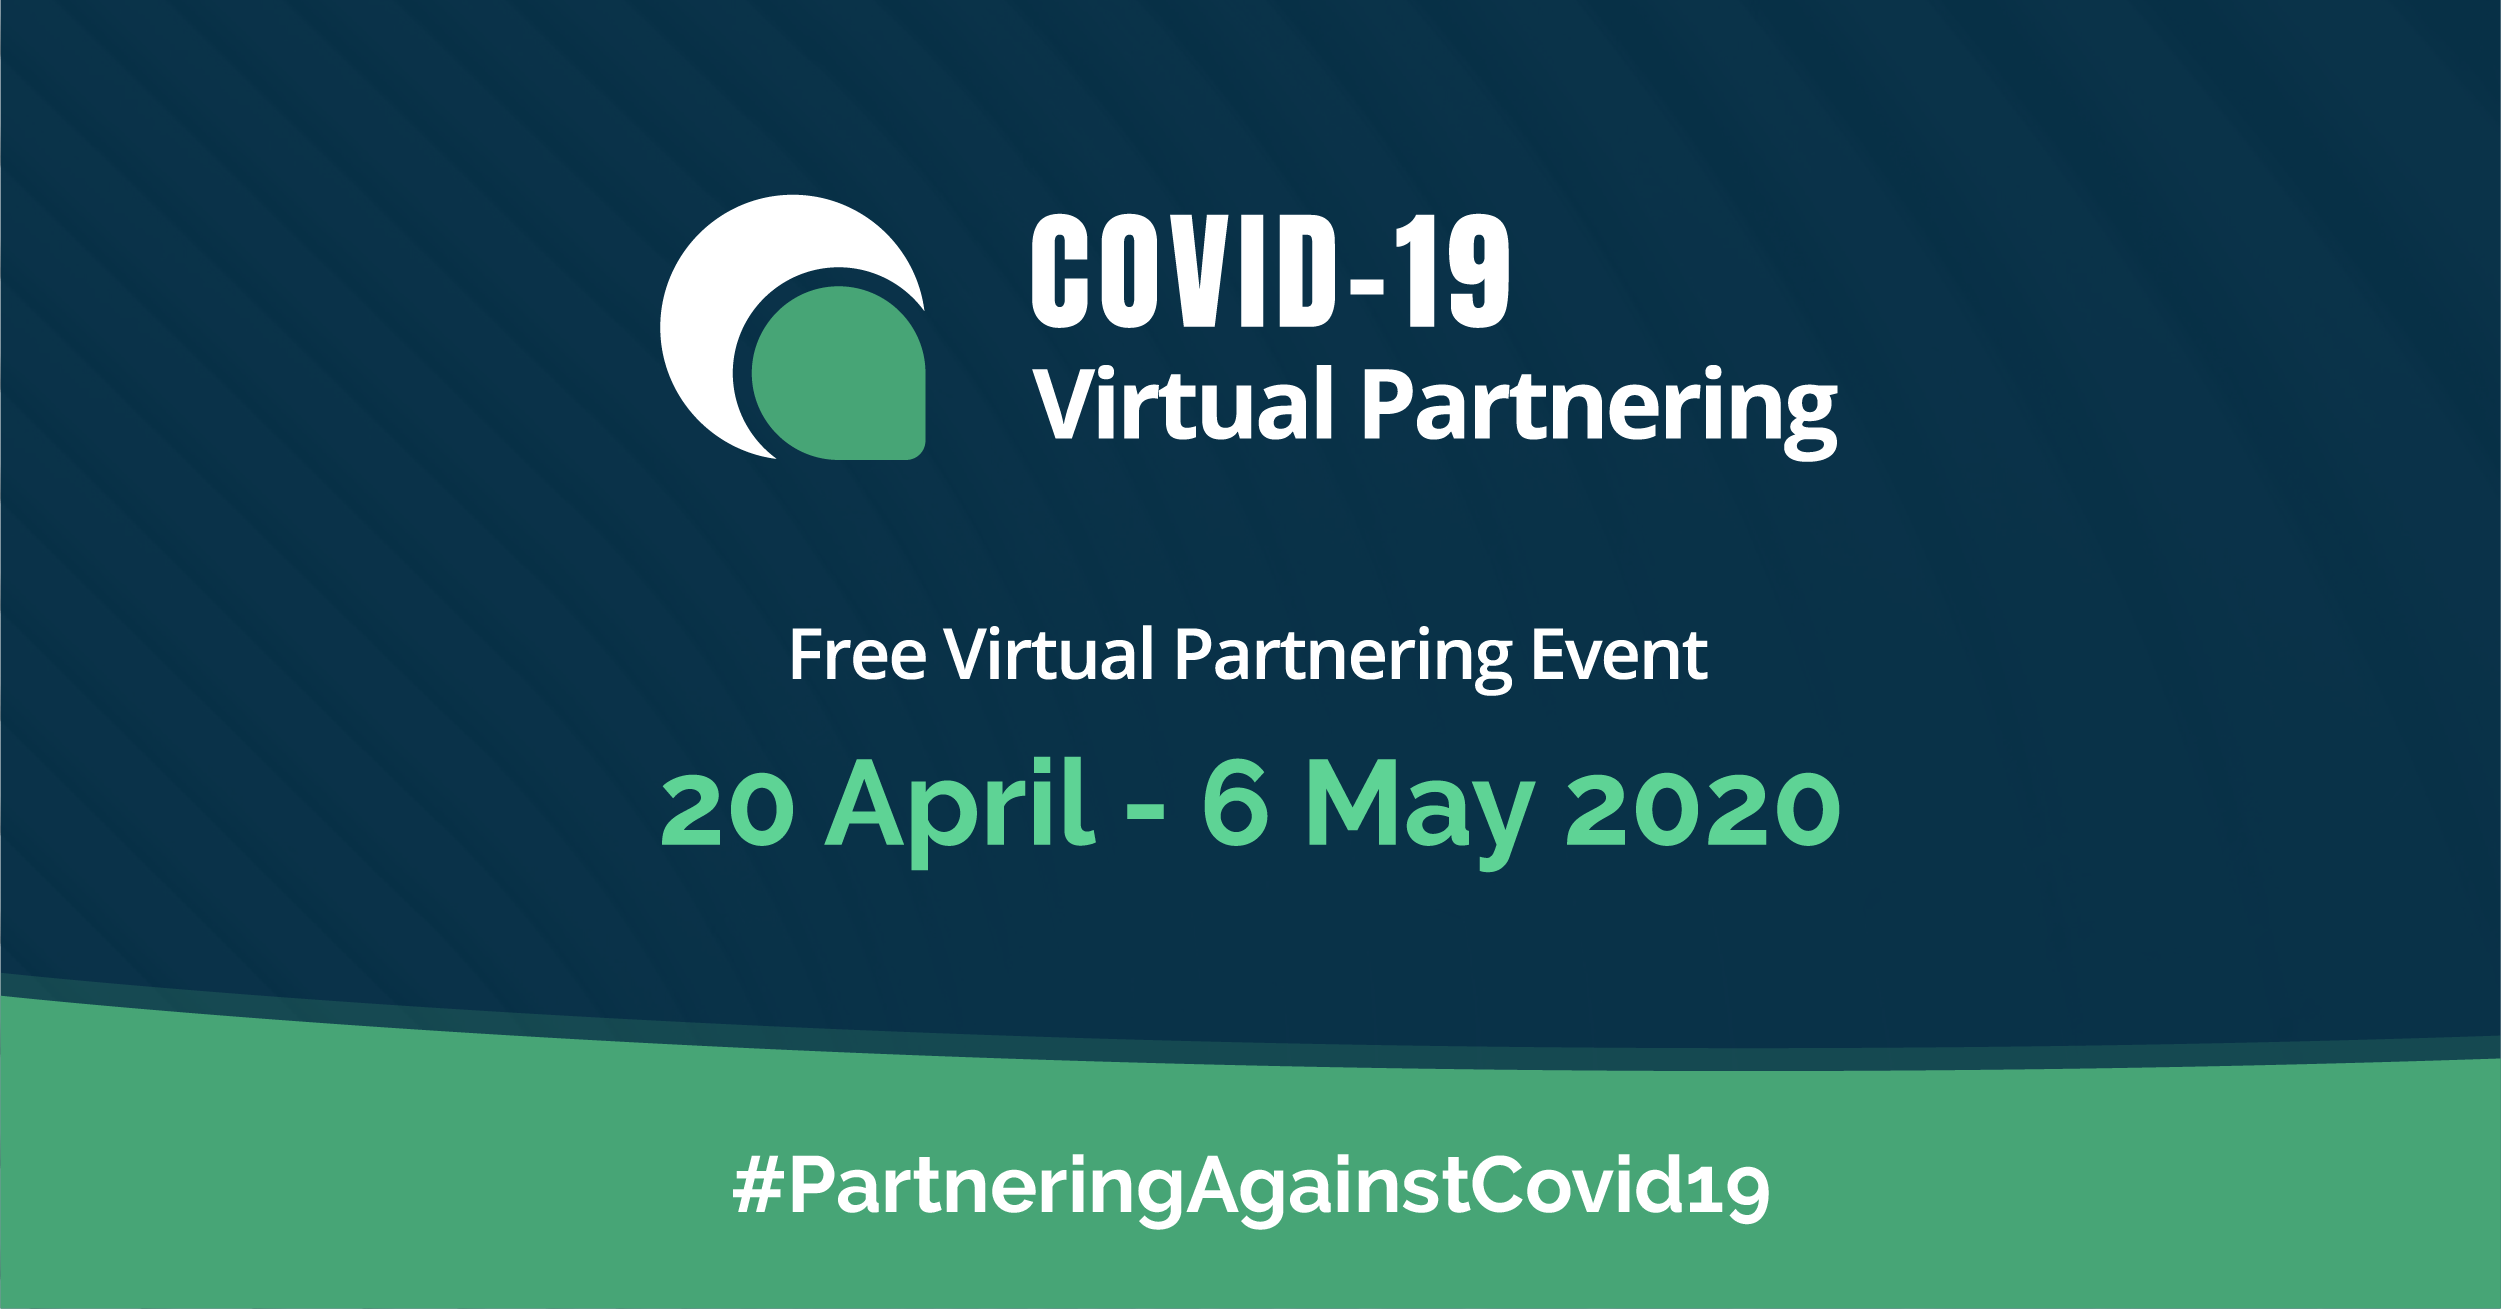 Virtual partnering event launched to accelerate partnerships in the life sciences industry to fight against COVID-19